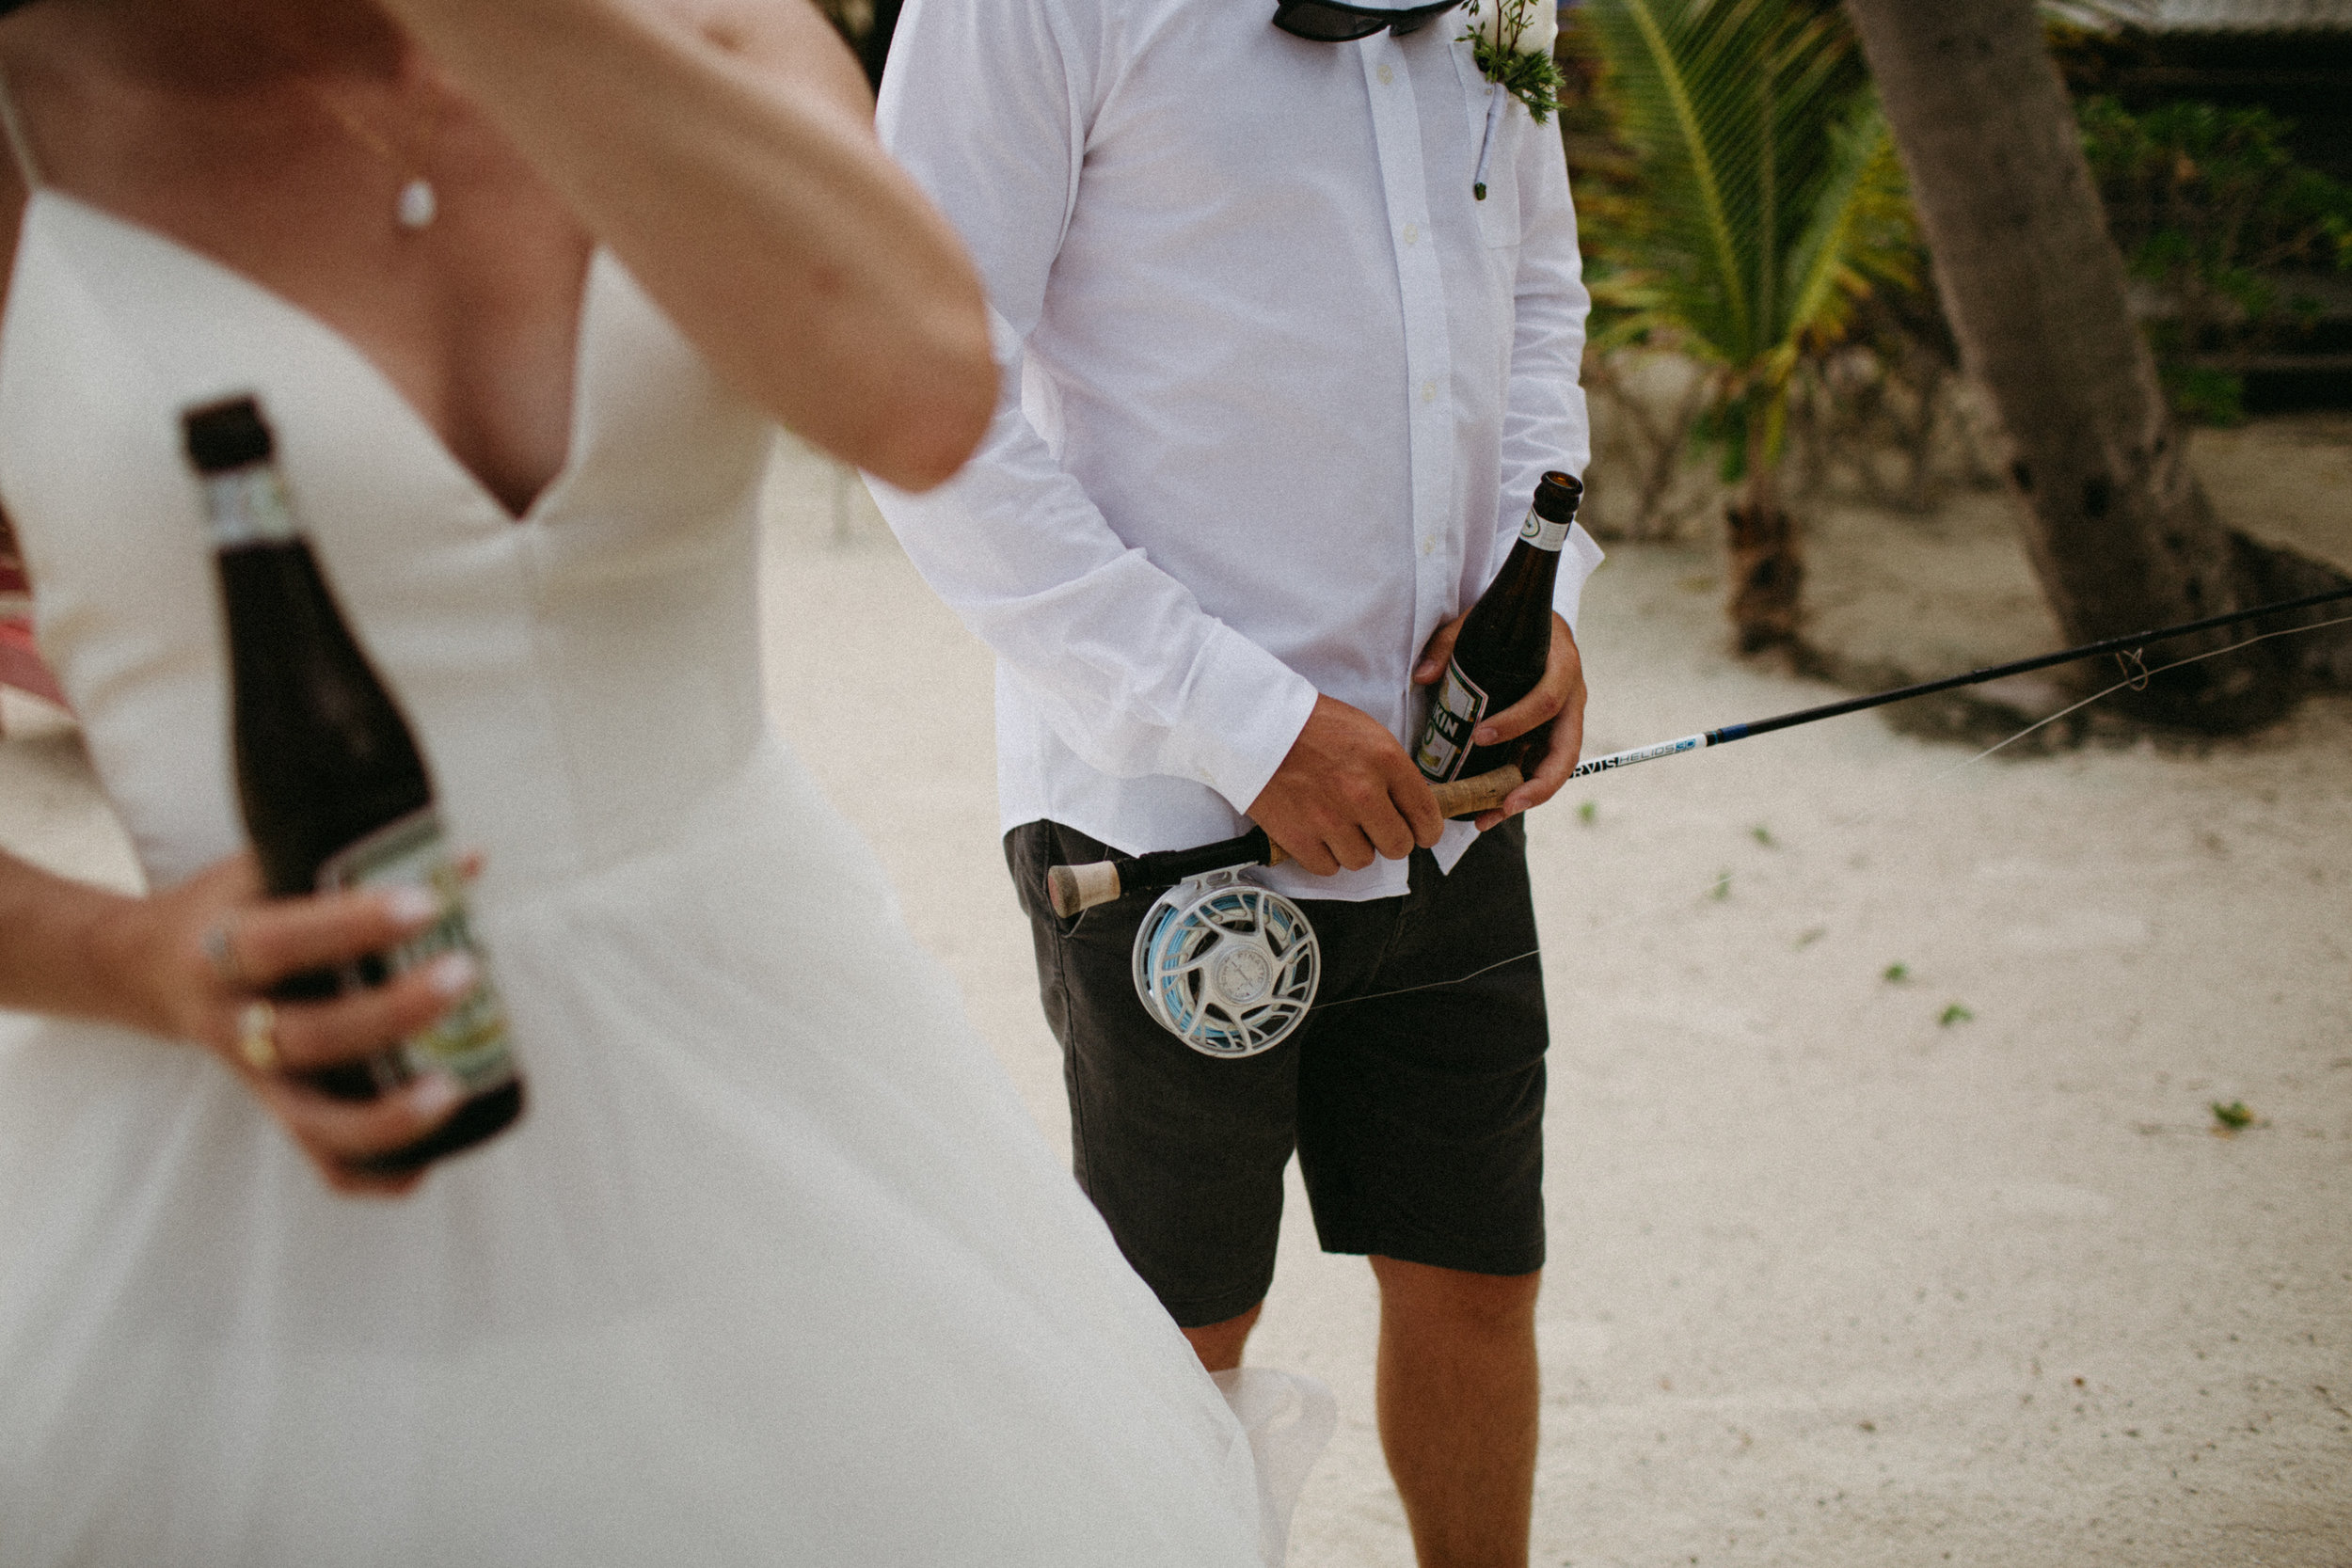 san-pescador-belize-wedding-christinemariephoto-j-k-54.jpg